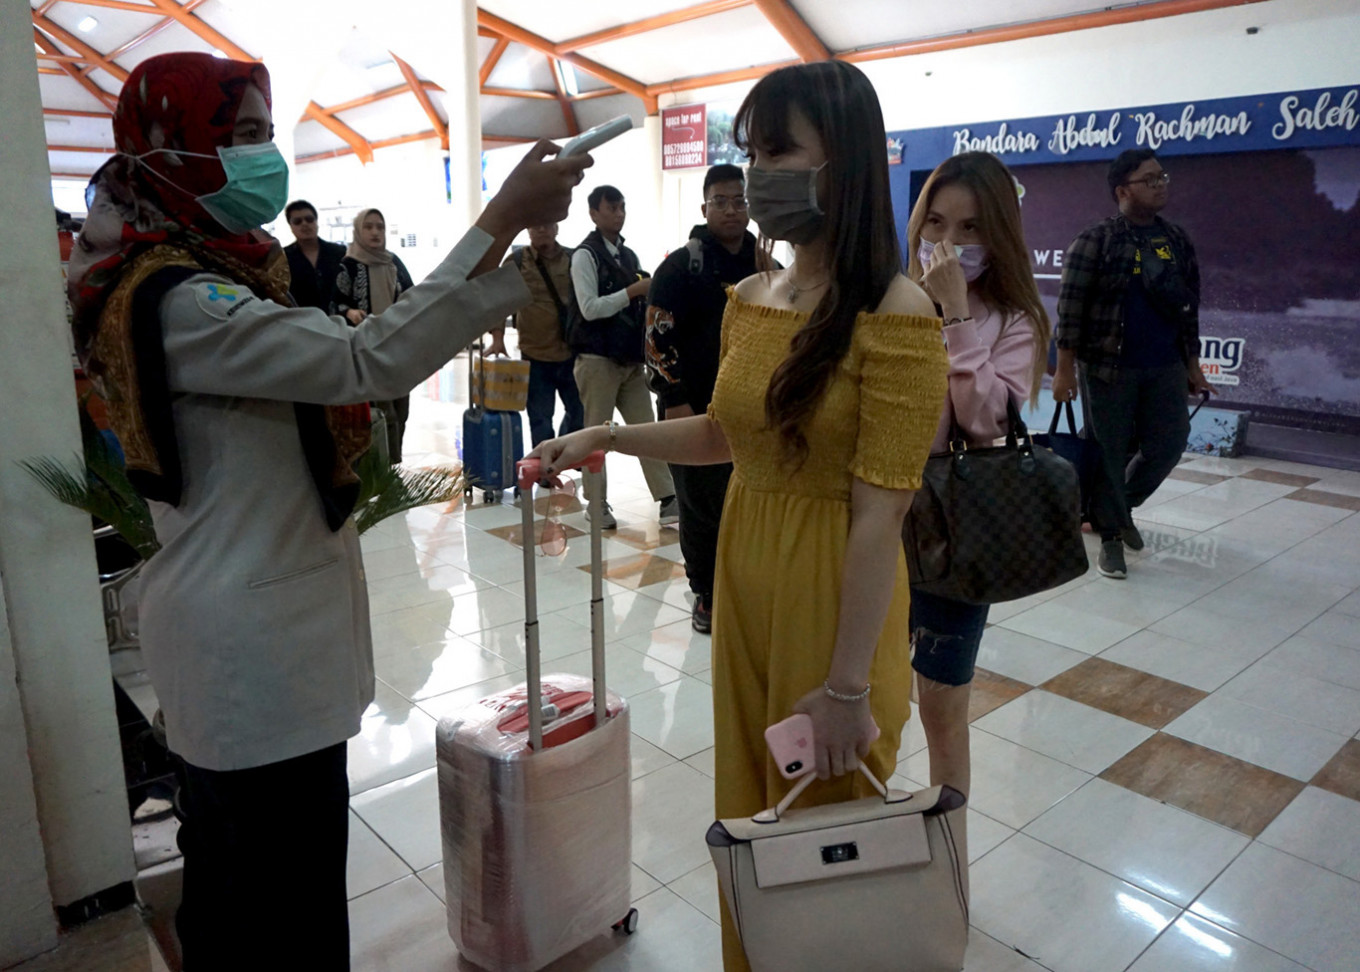 Japanese man's COVID-19 case raises concerns about Indonesia's detection ability